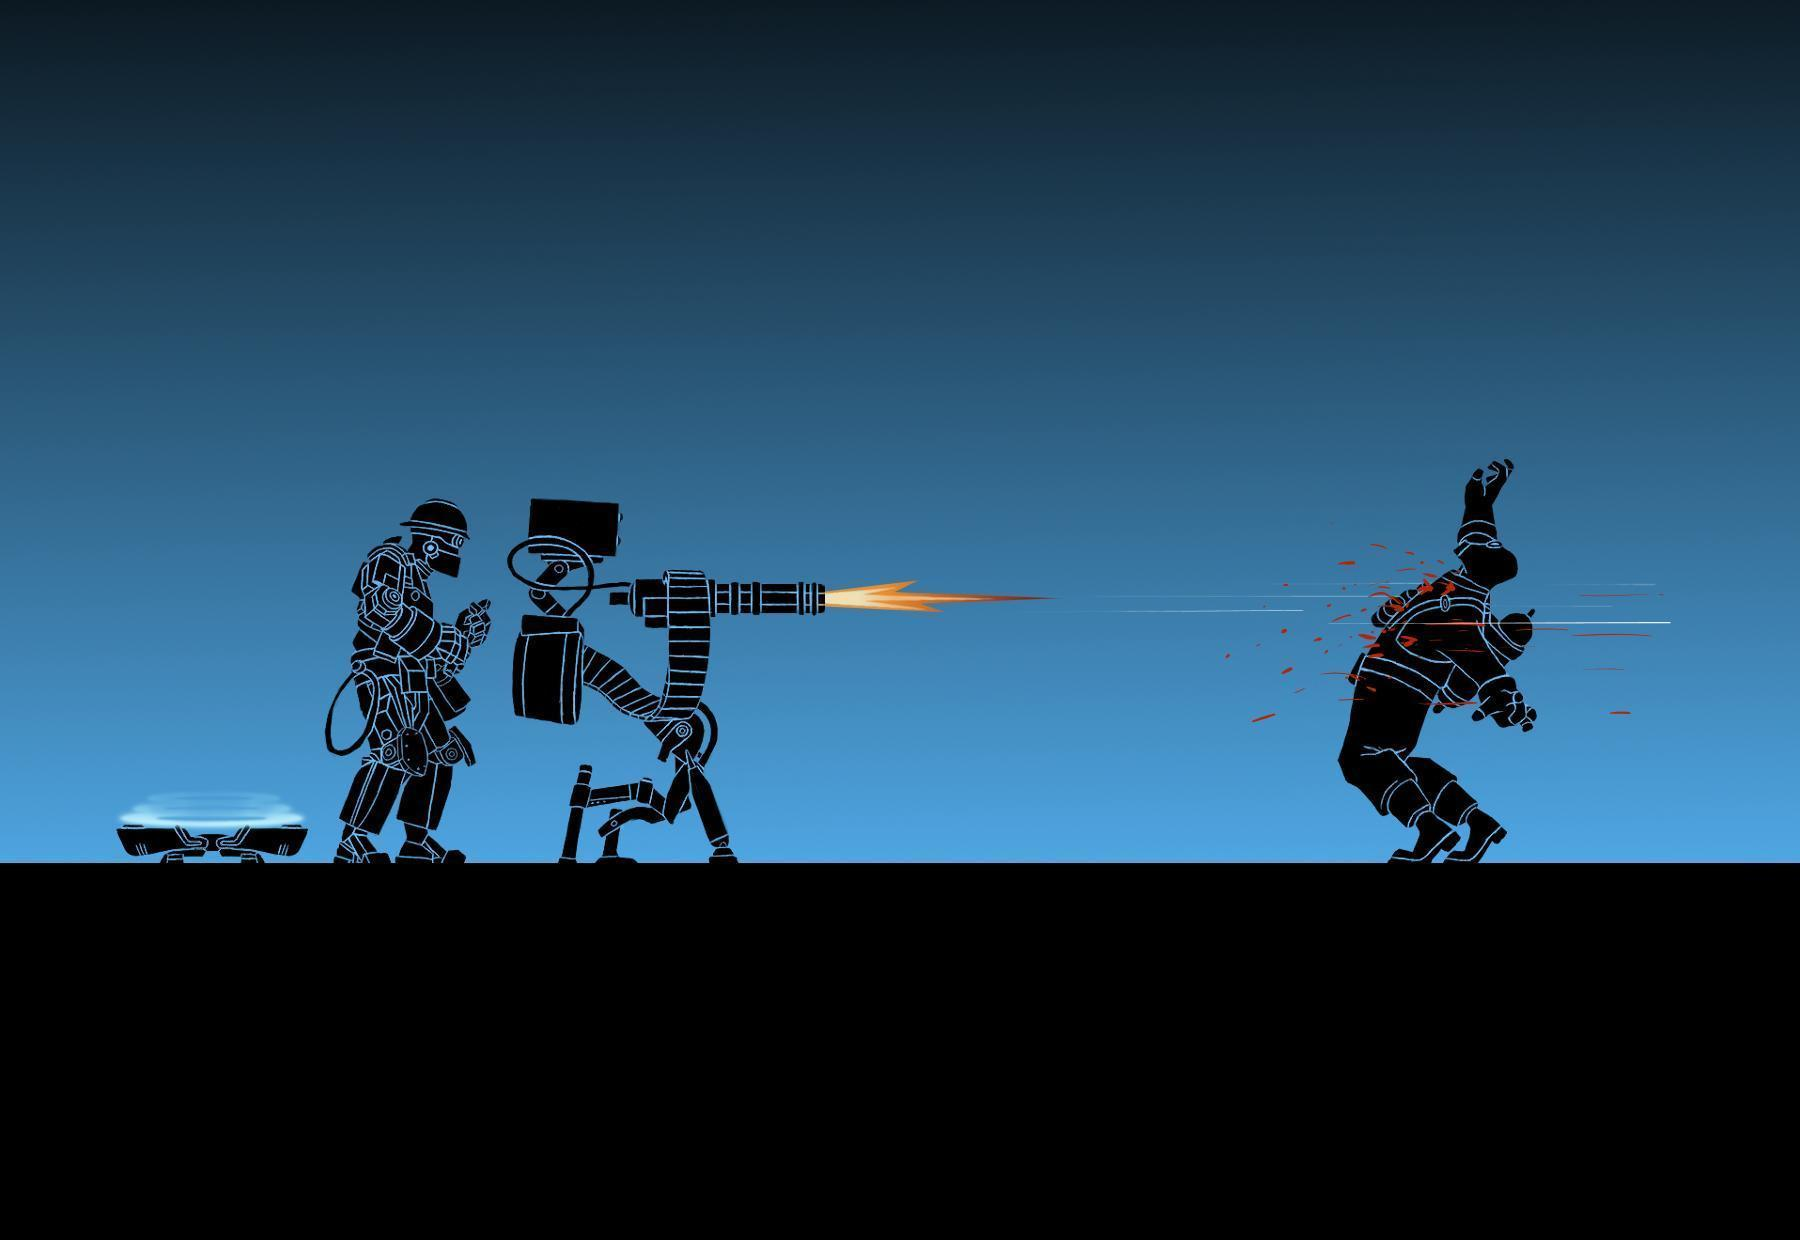 Team Fortress 2 Engineer Wallpapers - Wallpaper Cave